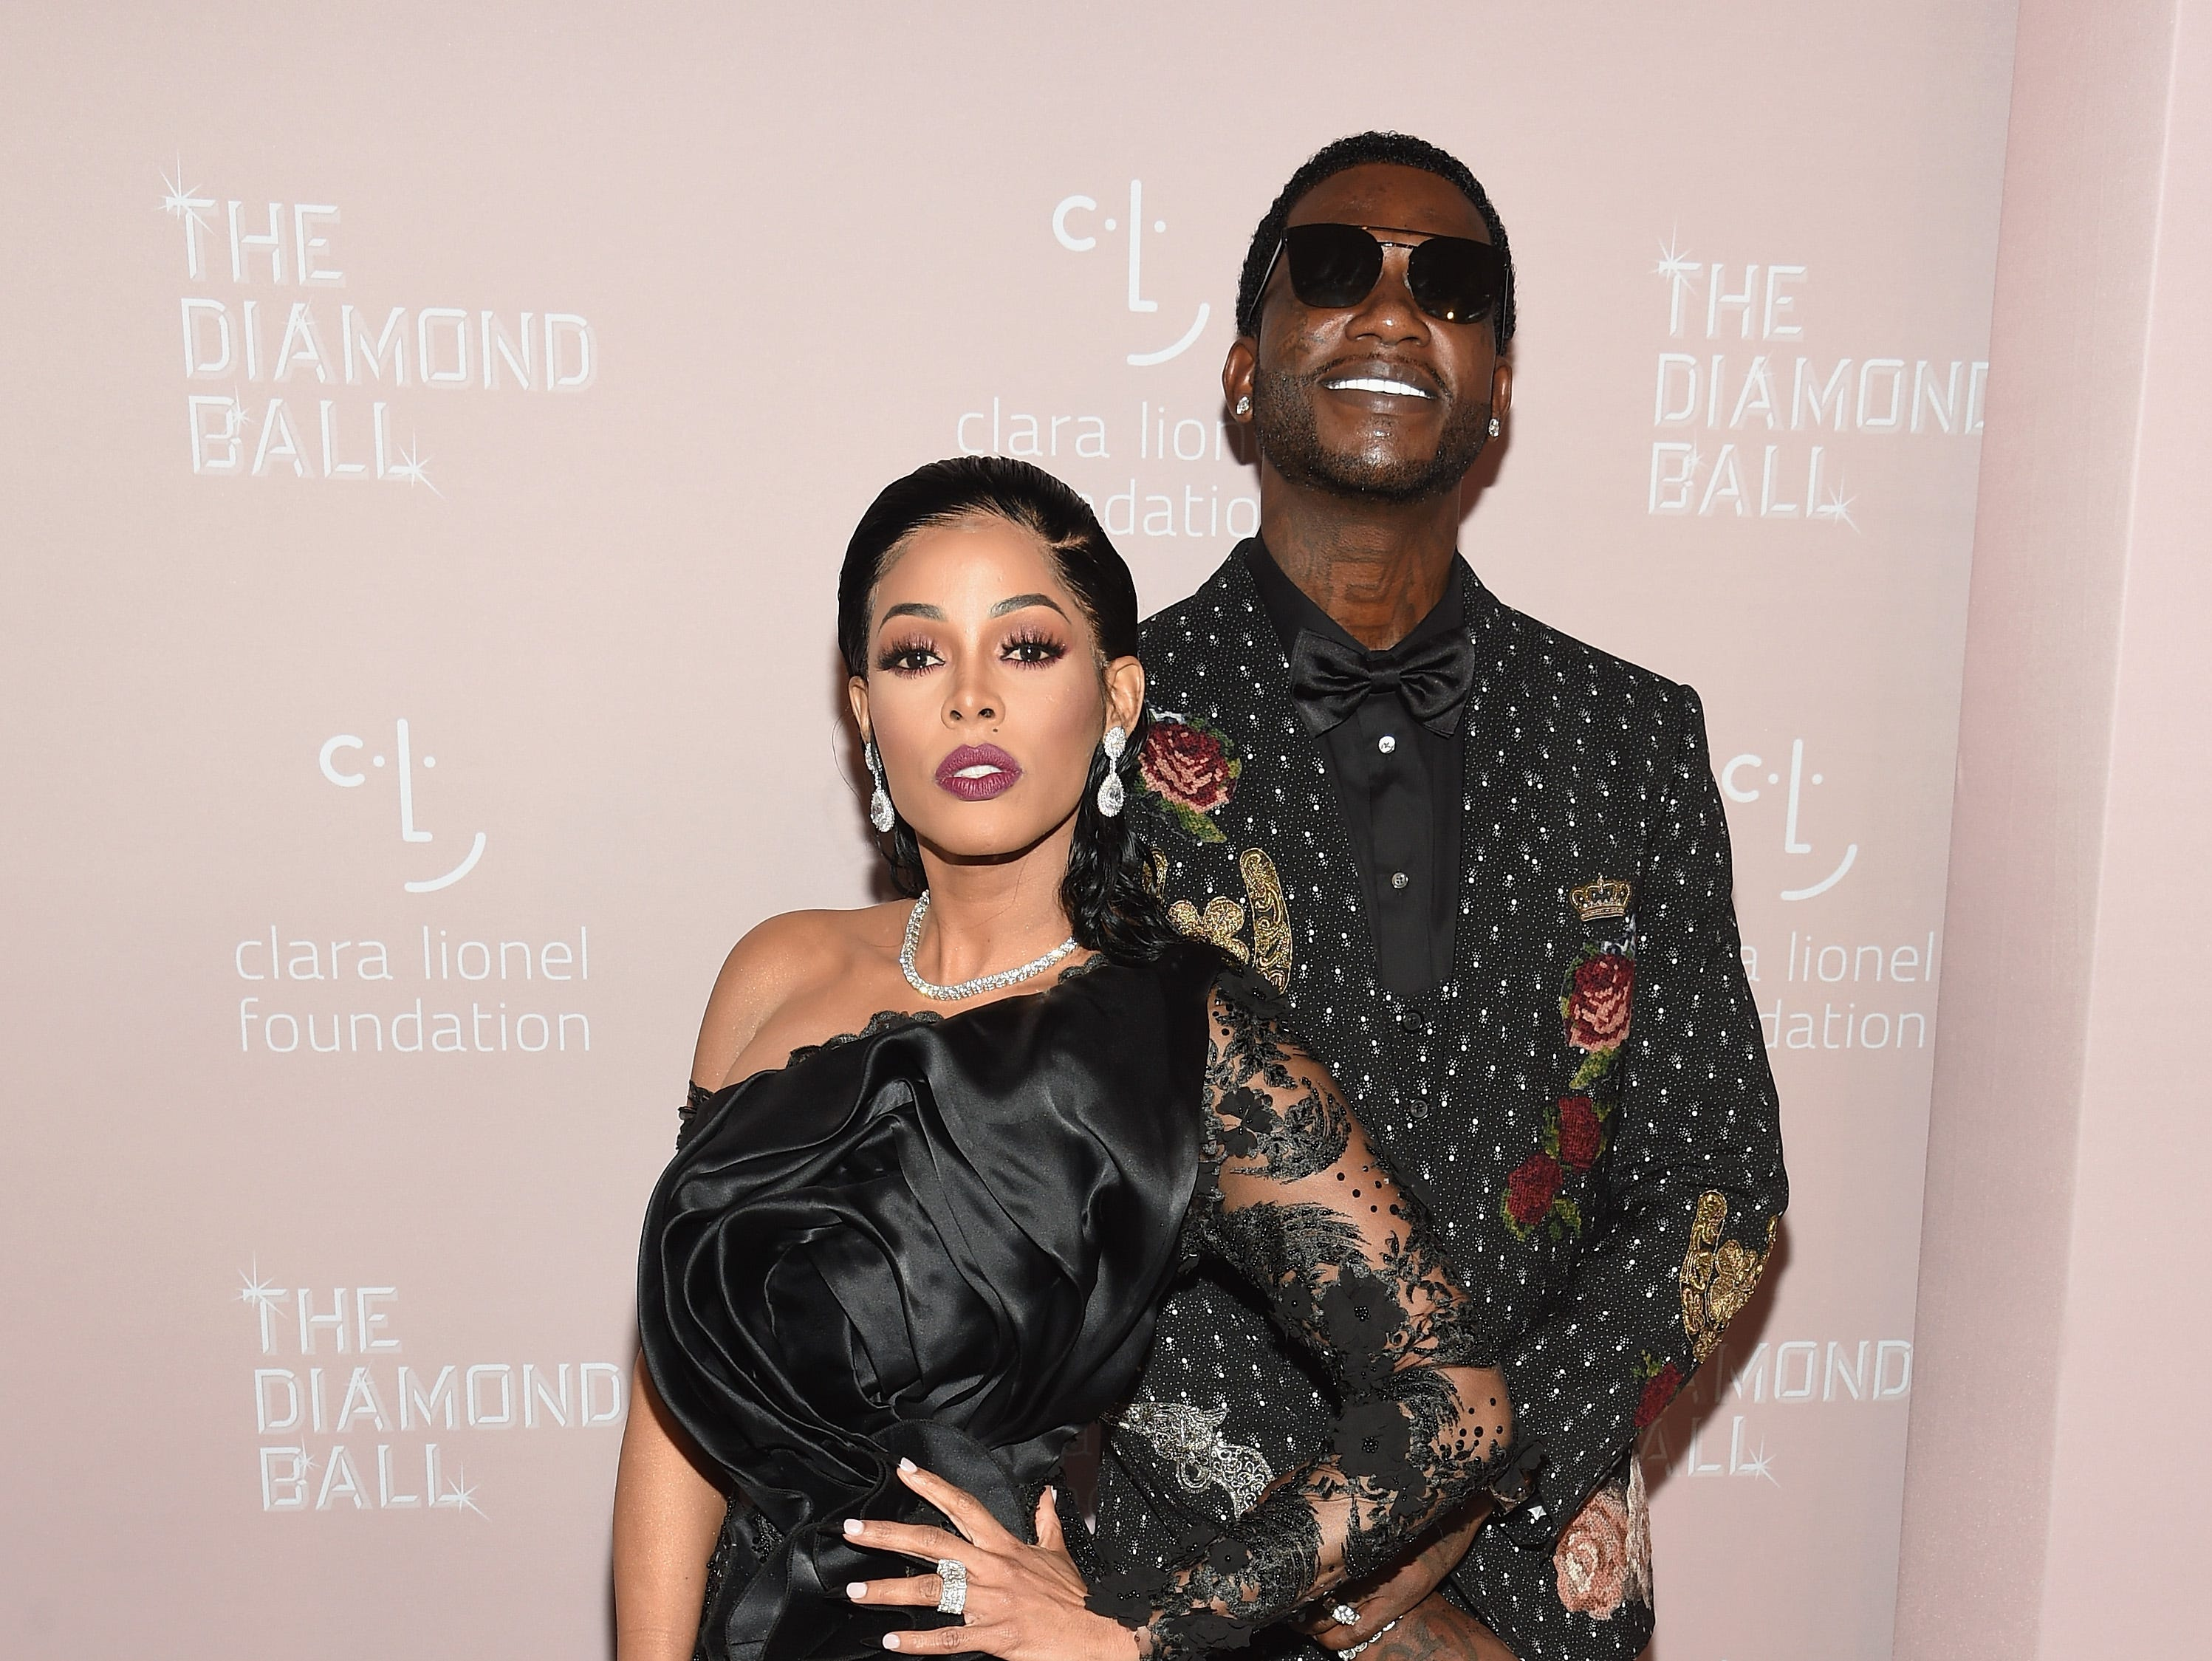 NEW YORK, NY - SEPTEMBER 13: Keyshia Ka'Oir (L) and Gucci Mane attend Rihanna's 4th Annual Diamond Ball benefitting The Clara Lionel Foundation at Cipriani Wall Street on September 13, 2018 in New York City.  (Photo by Dimitrios Kambouris/Getty Images for Diamond Ball) ORG XMIT: 775197456 ORIG FILE ID: 1032941788